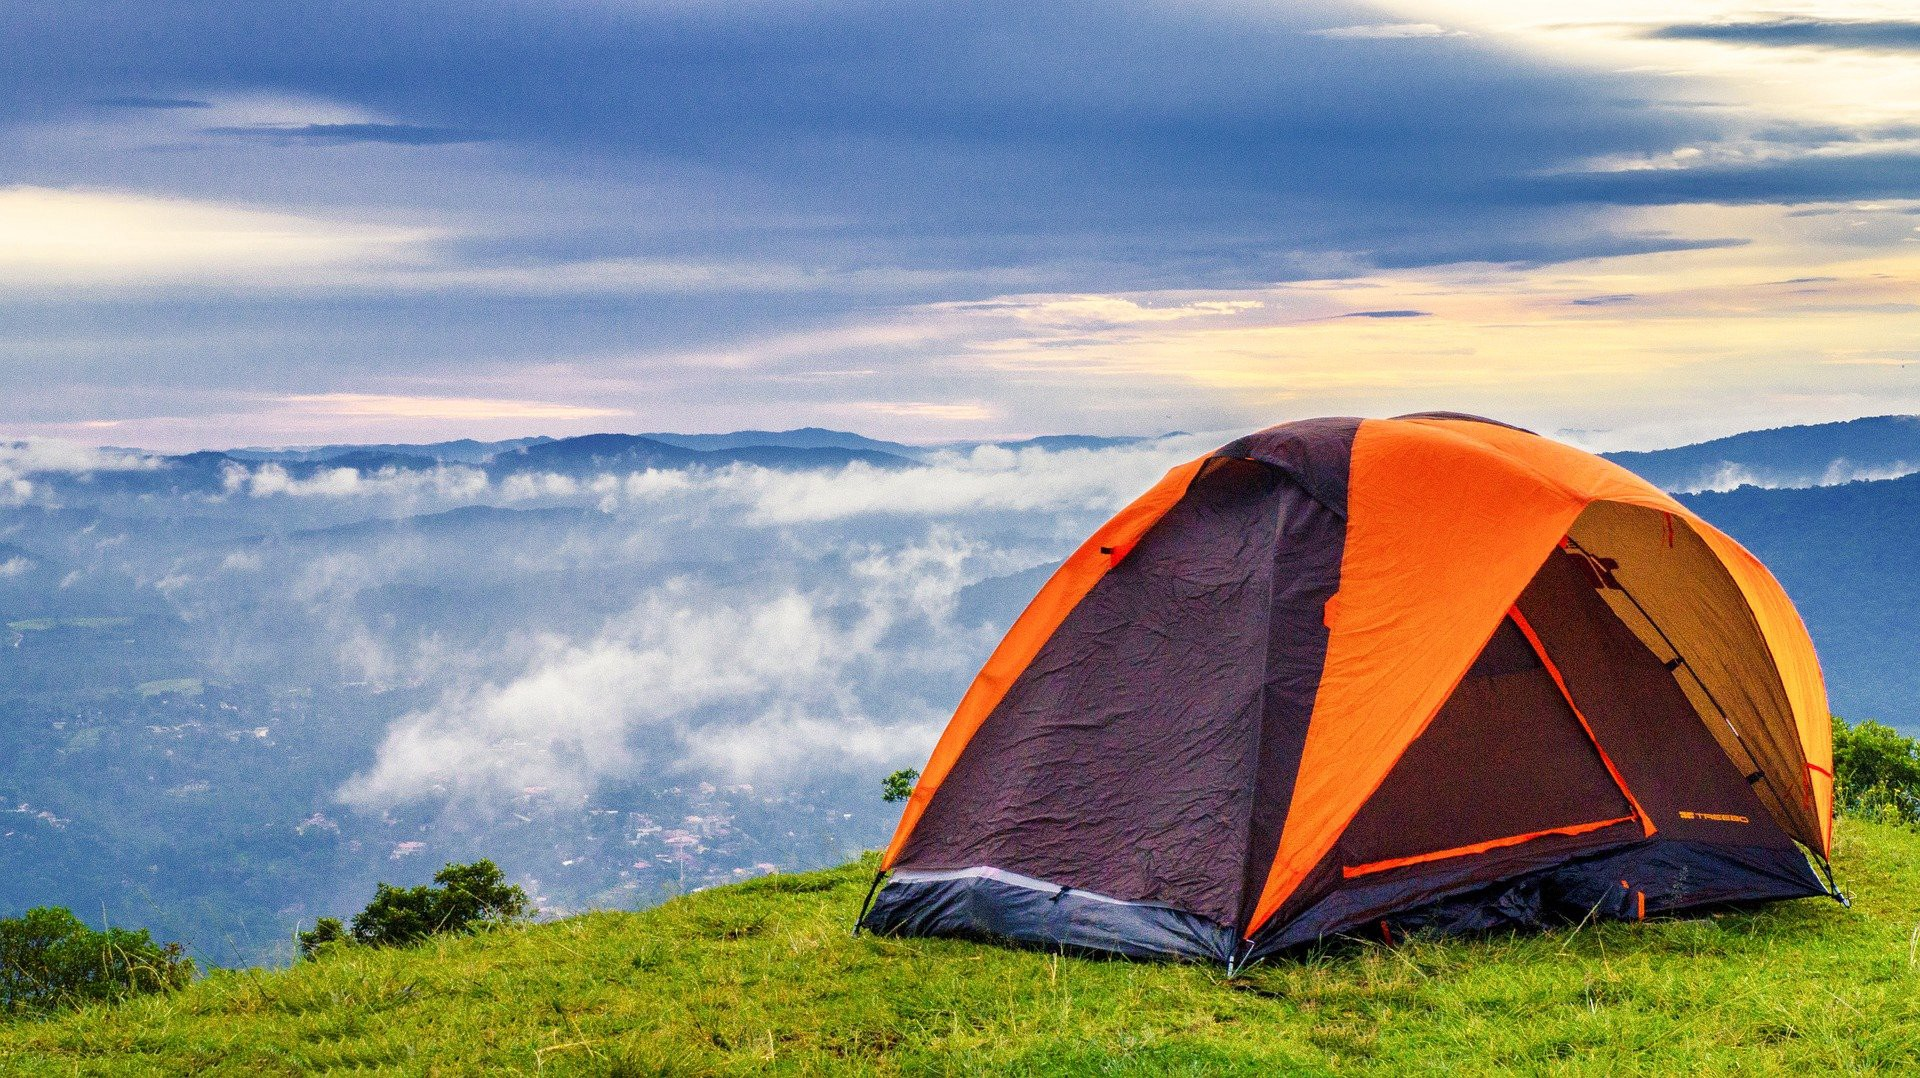 Forget This Screen — The Real World Is Out There — Tenting on hills